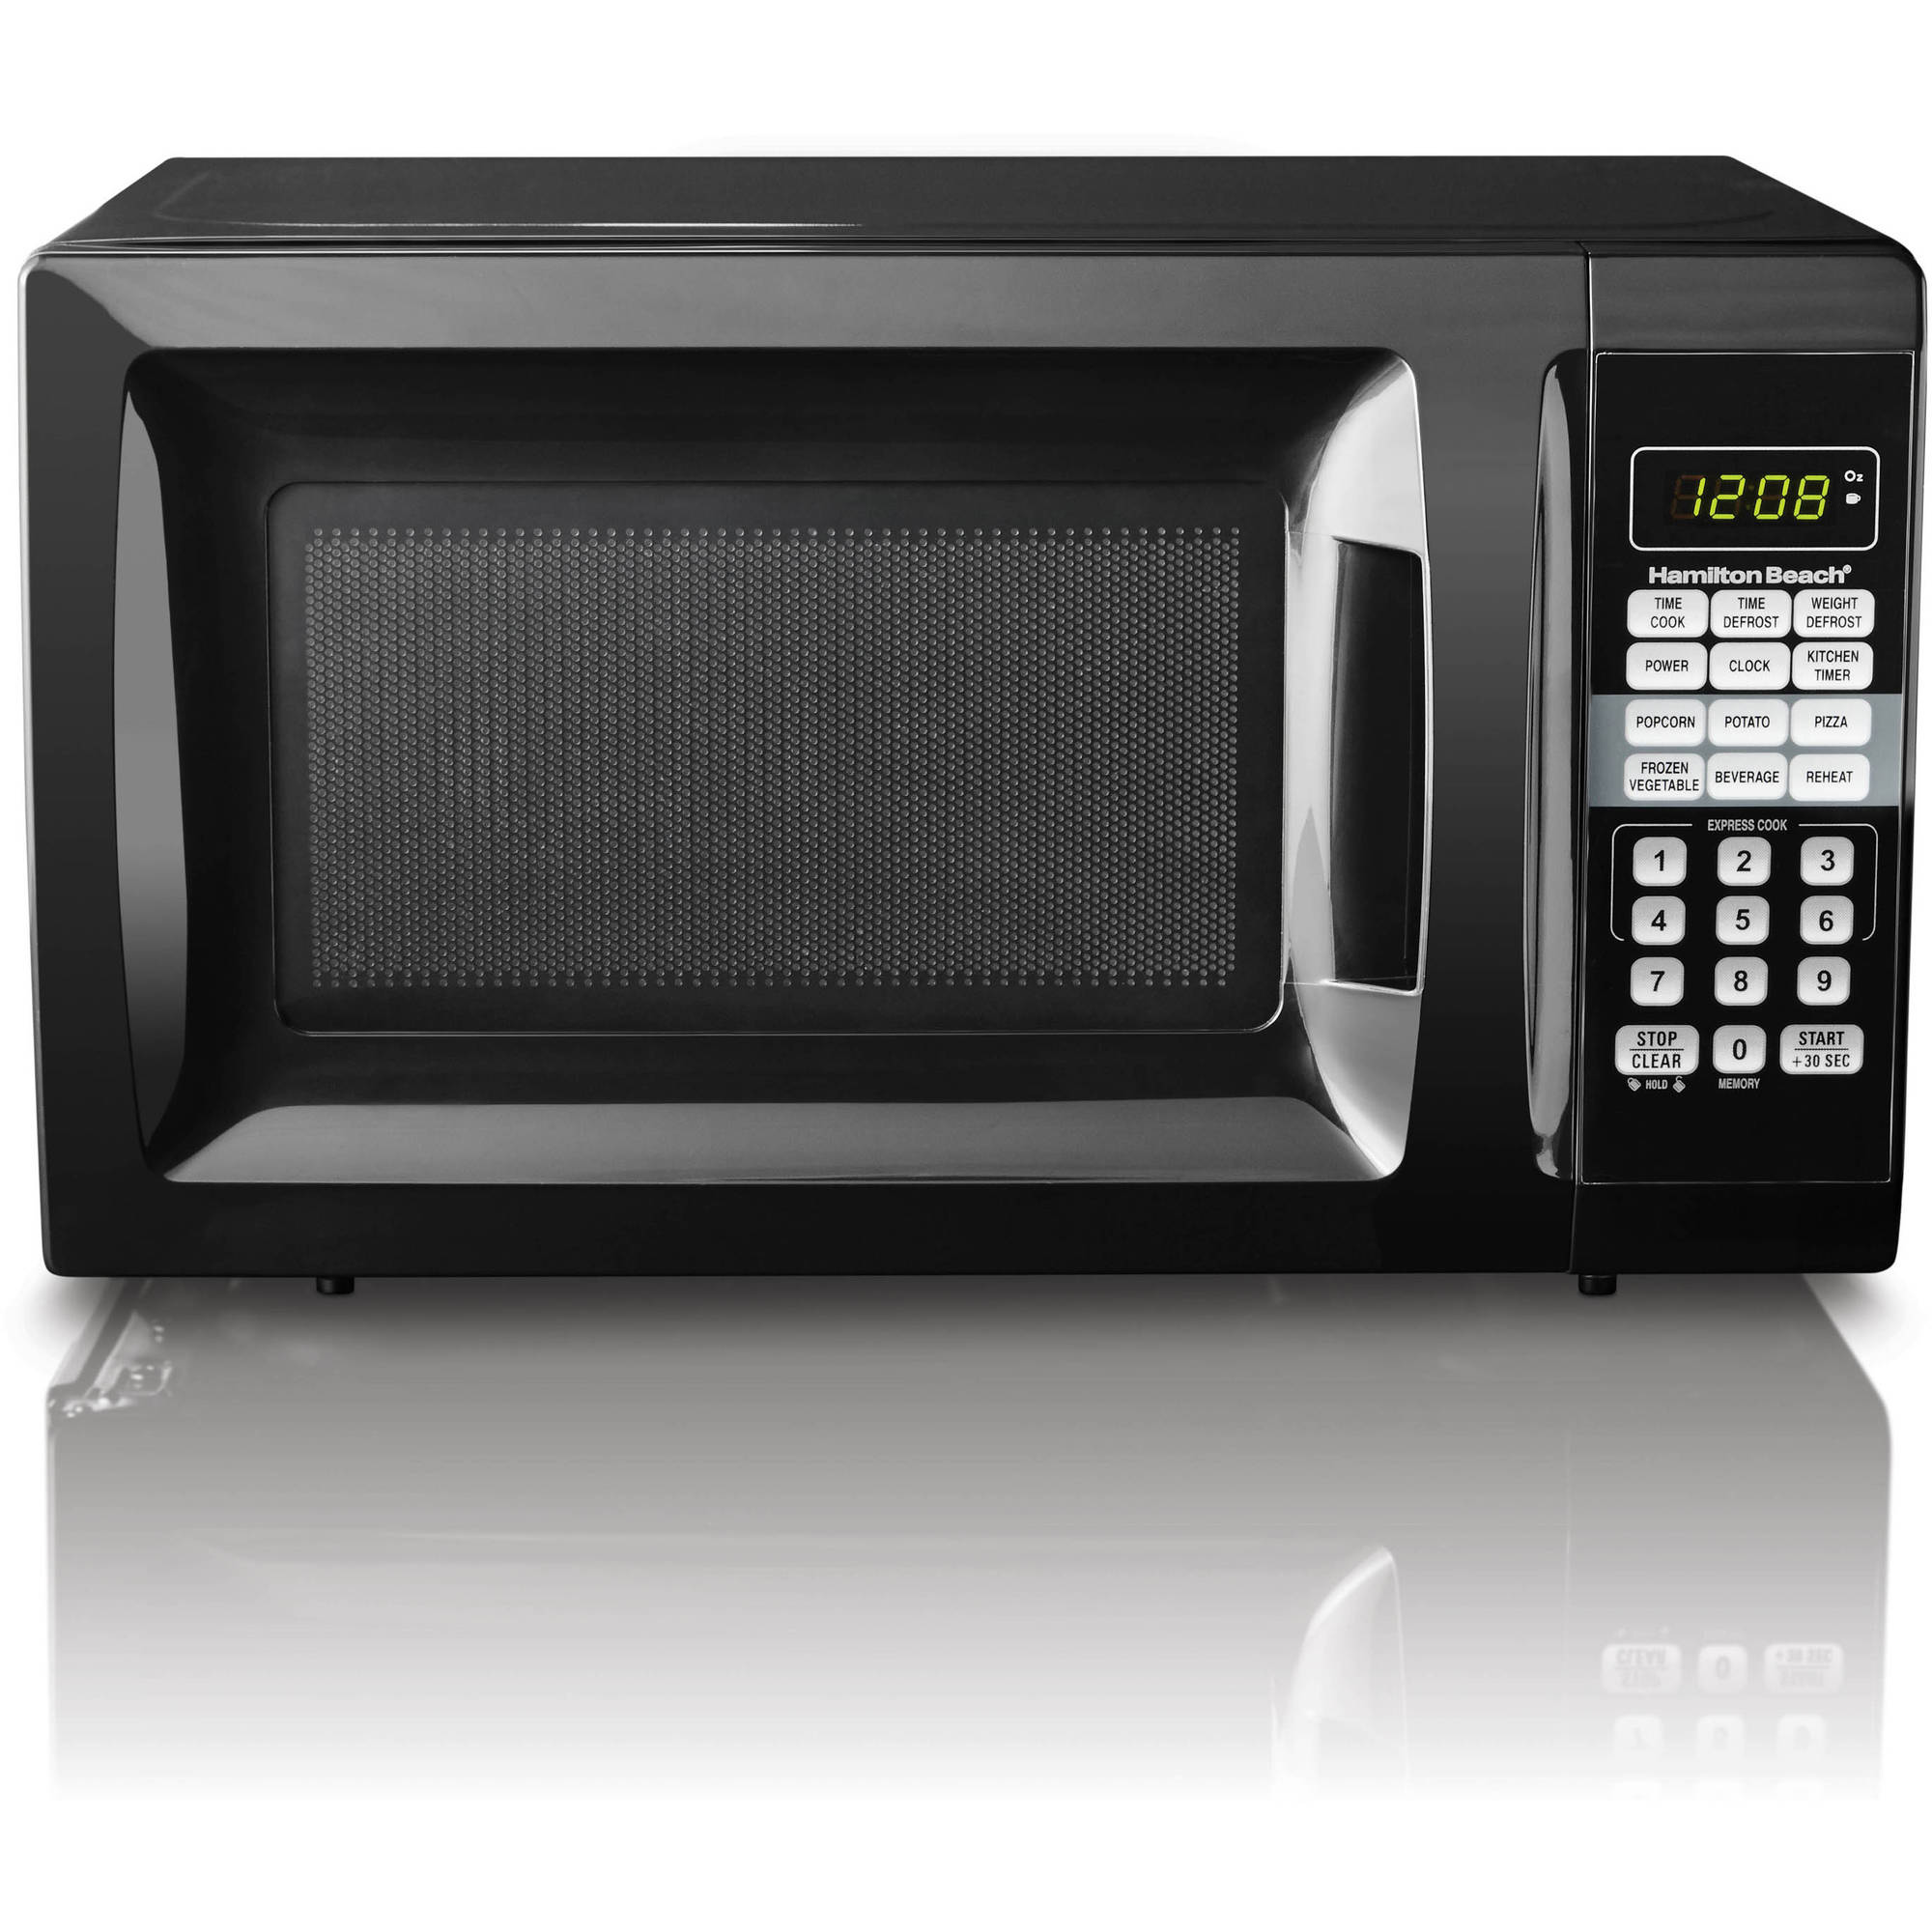 ovens built steel stainless microwave countertop cu in com ft shopperschoice viking series oven